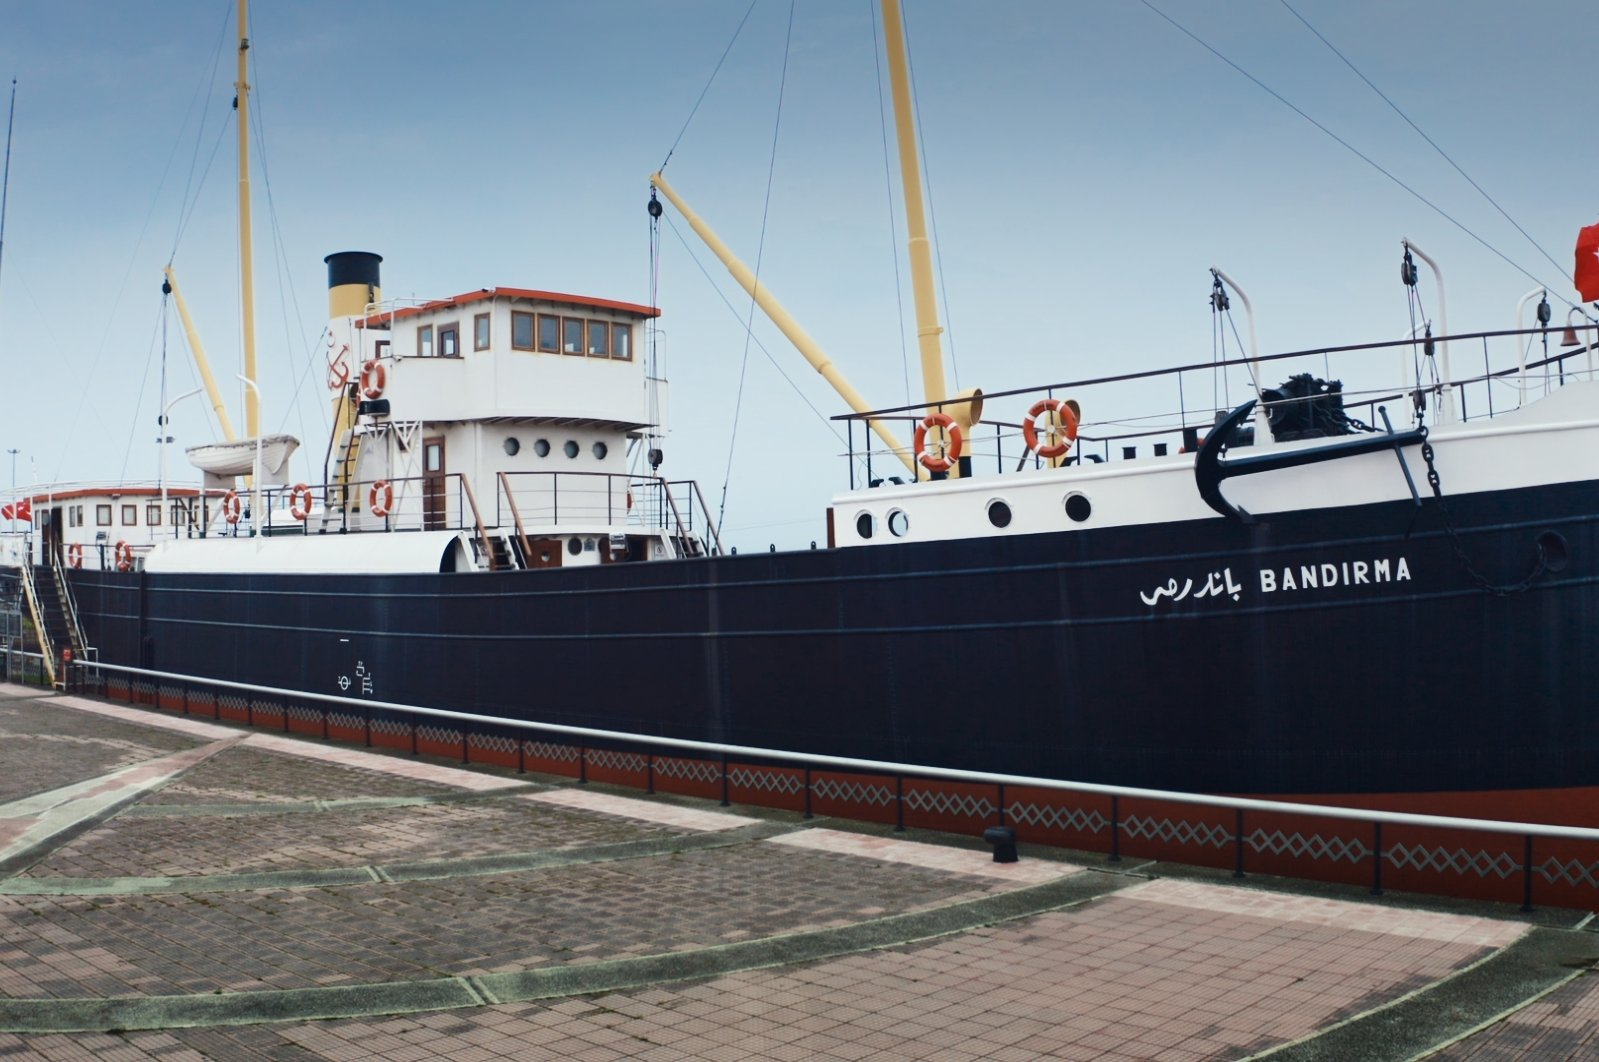 The replica of the historic SS Bandırma, also known as the Bandırma Ferry, which secretly delivered Mustafa Kemal Atatürk to Samsun on May 19, 1919, to start the War of Independence, rests in Samsun, northern Turkey, May 18, 2021. (AA Photo)